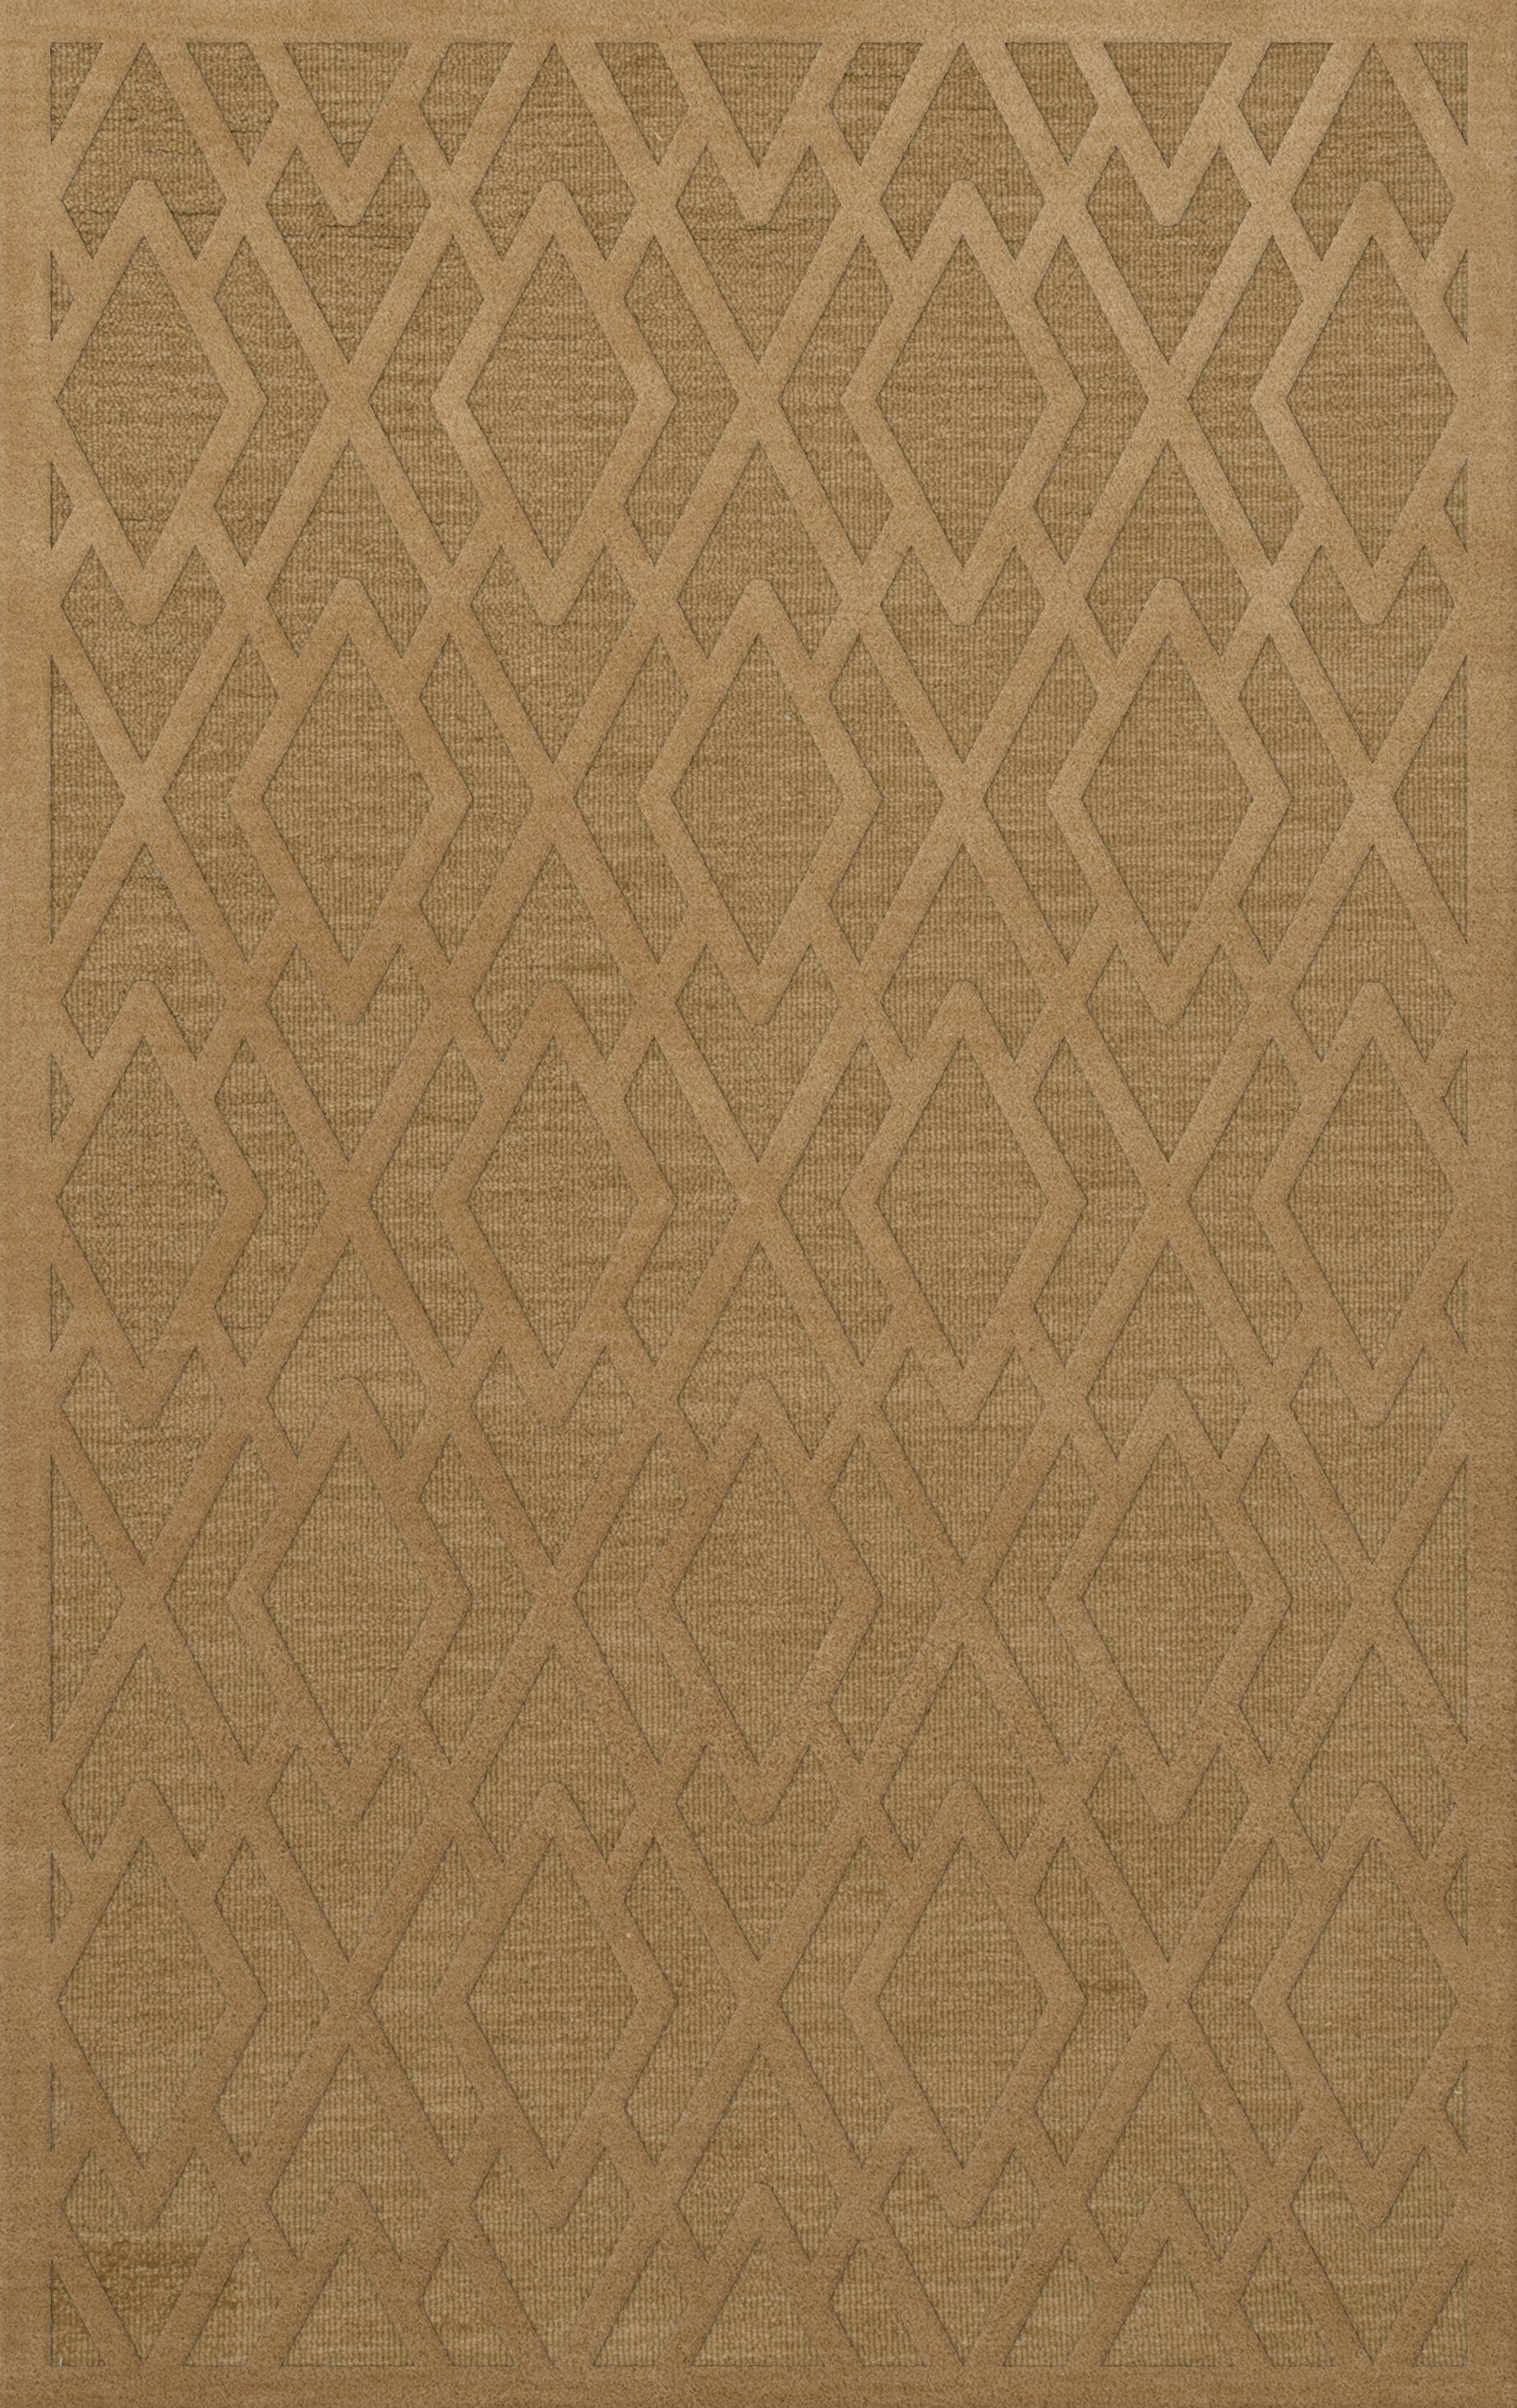 Dover Tufted Wool Wheat Area Rug Rug Size: Rectangle 3' x 5'